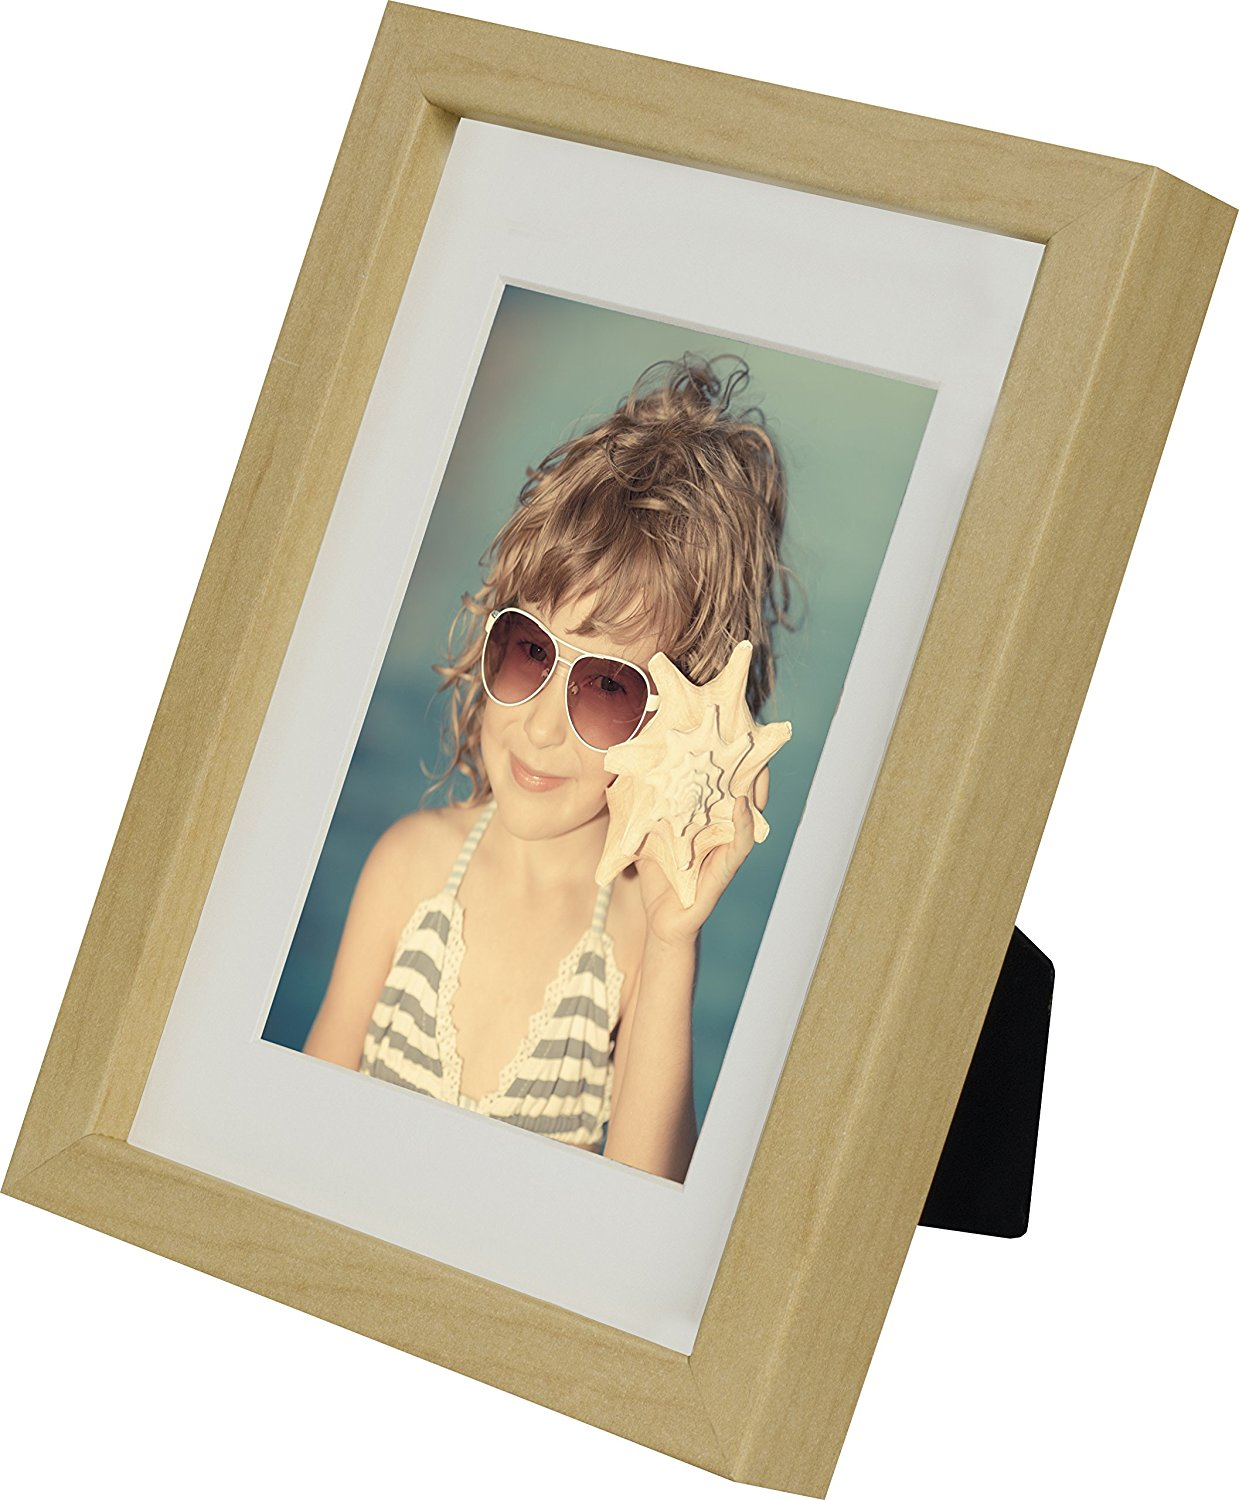 5 x 7-Inch Picture Photo Frame with mount for 4 x 6-Inch photo, BIRCH